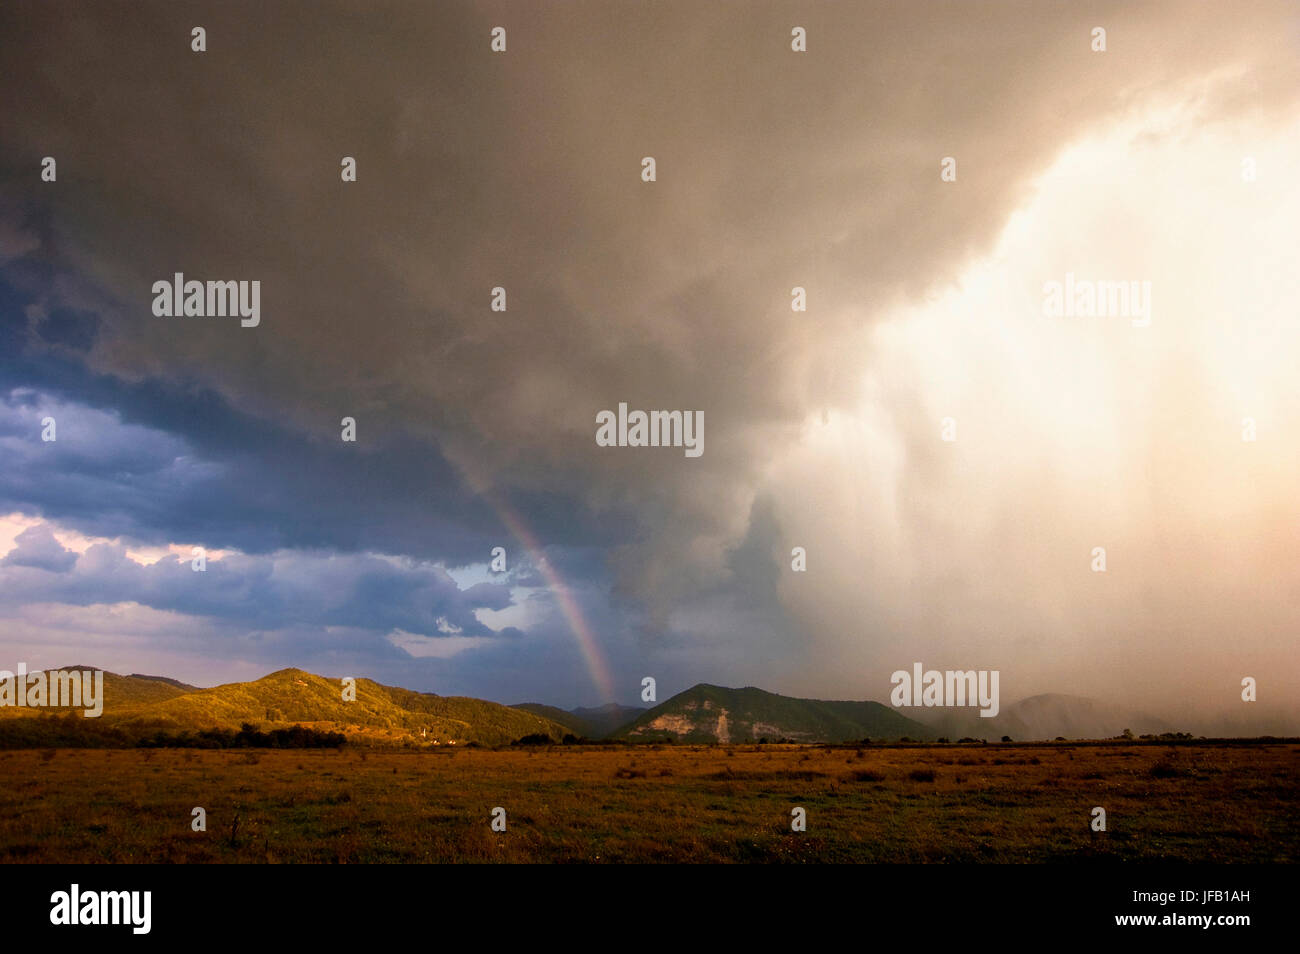 extreme weather landscape with dramatic storm clouds, heavy rain and rainbow in sunset light Stock Photo